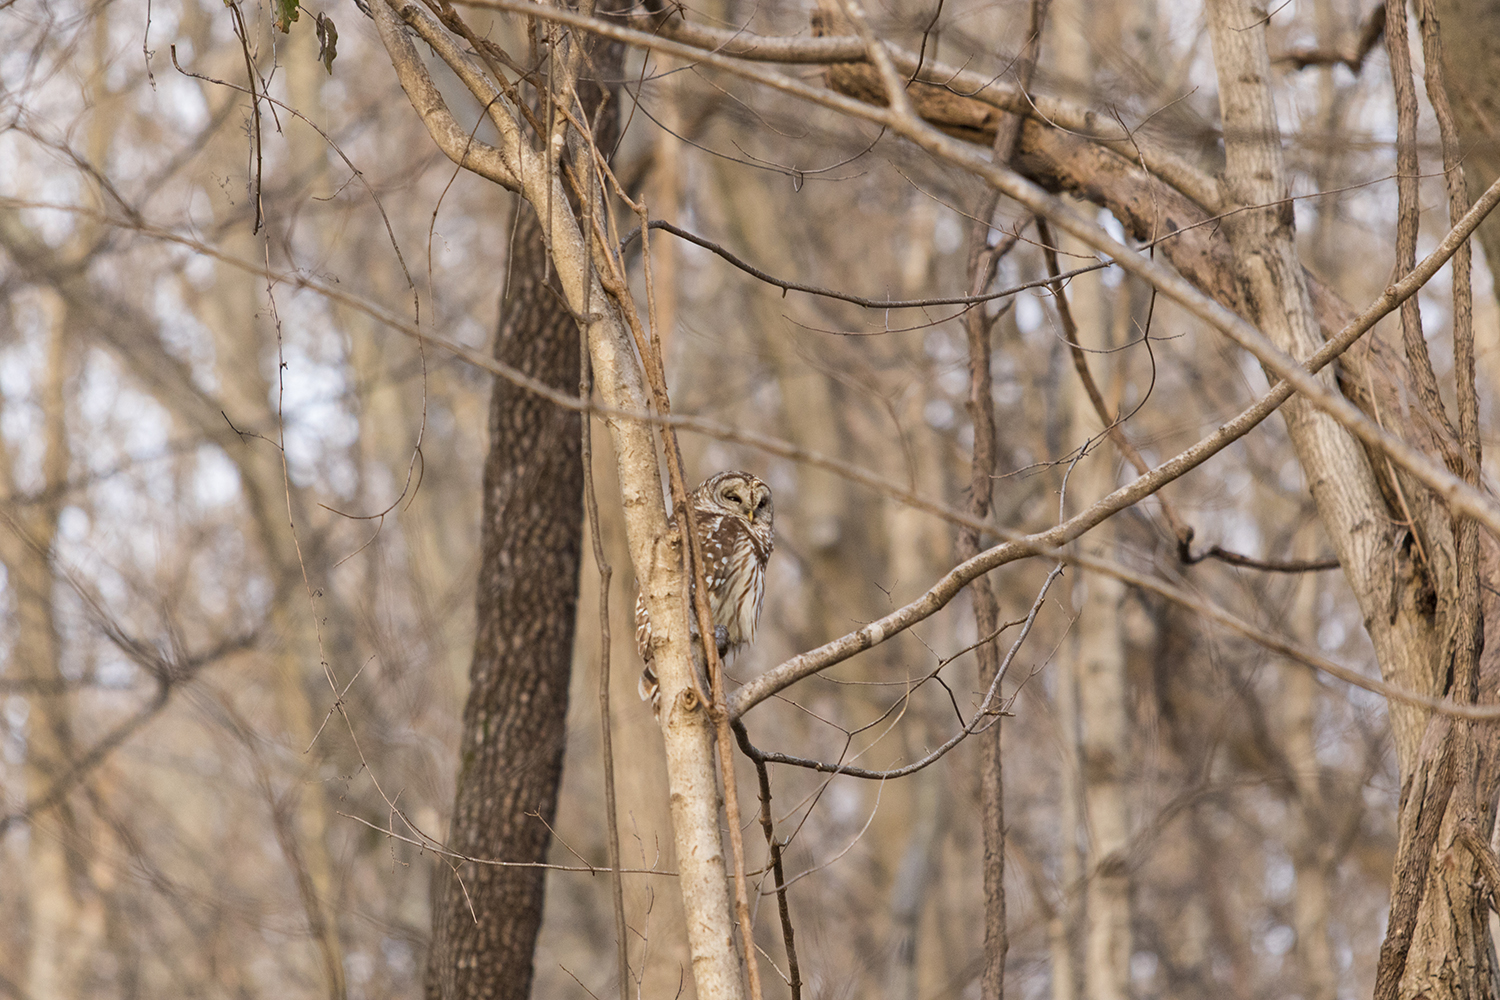 Owl in a tree blending nicely.